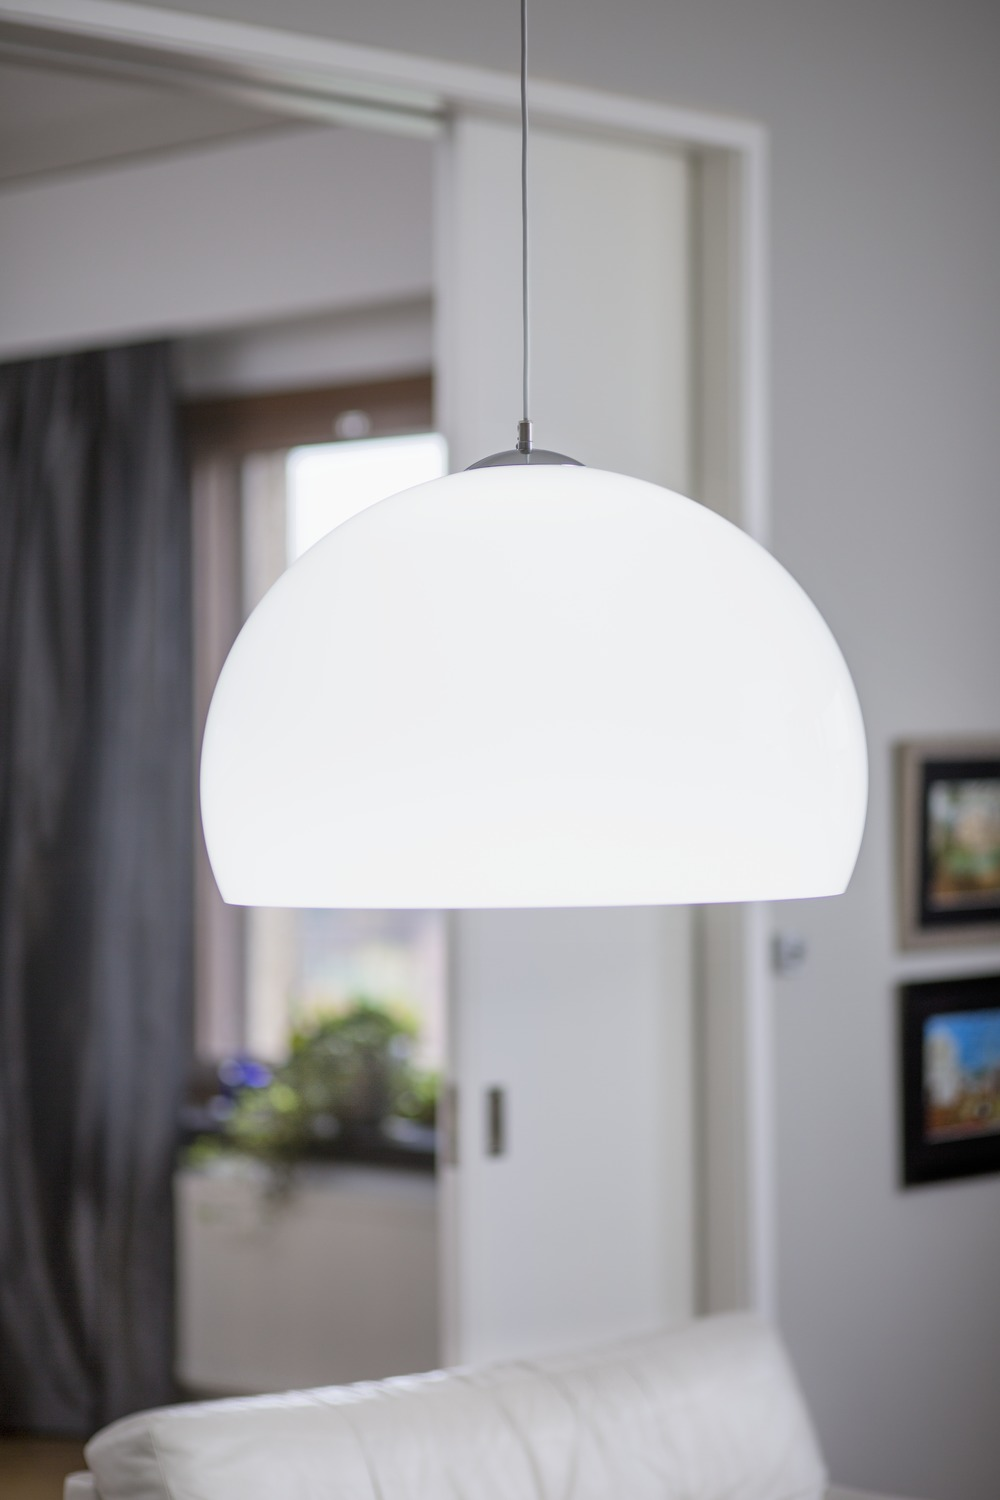 Leonardo 43 hanging light SUR